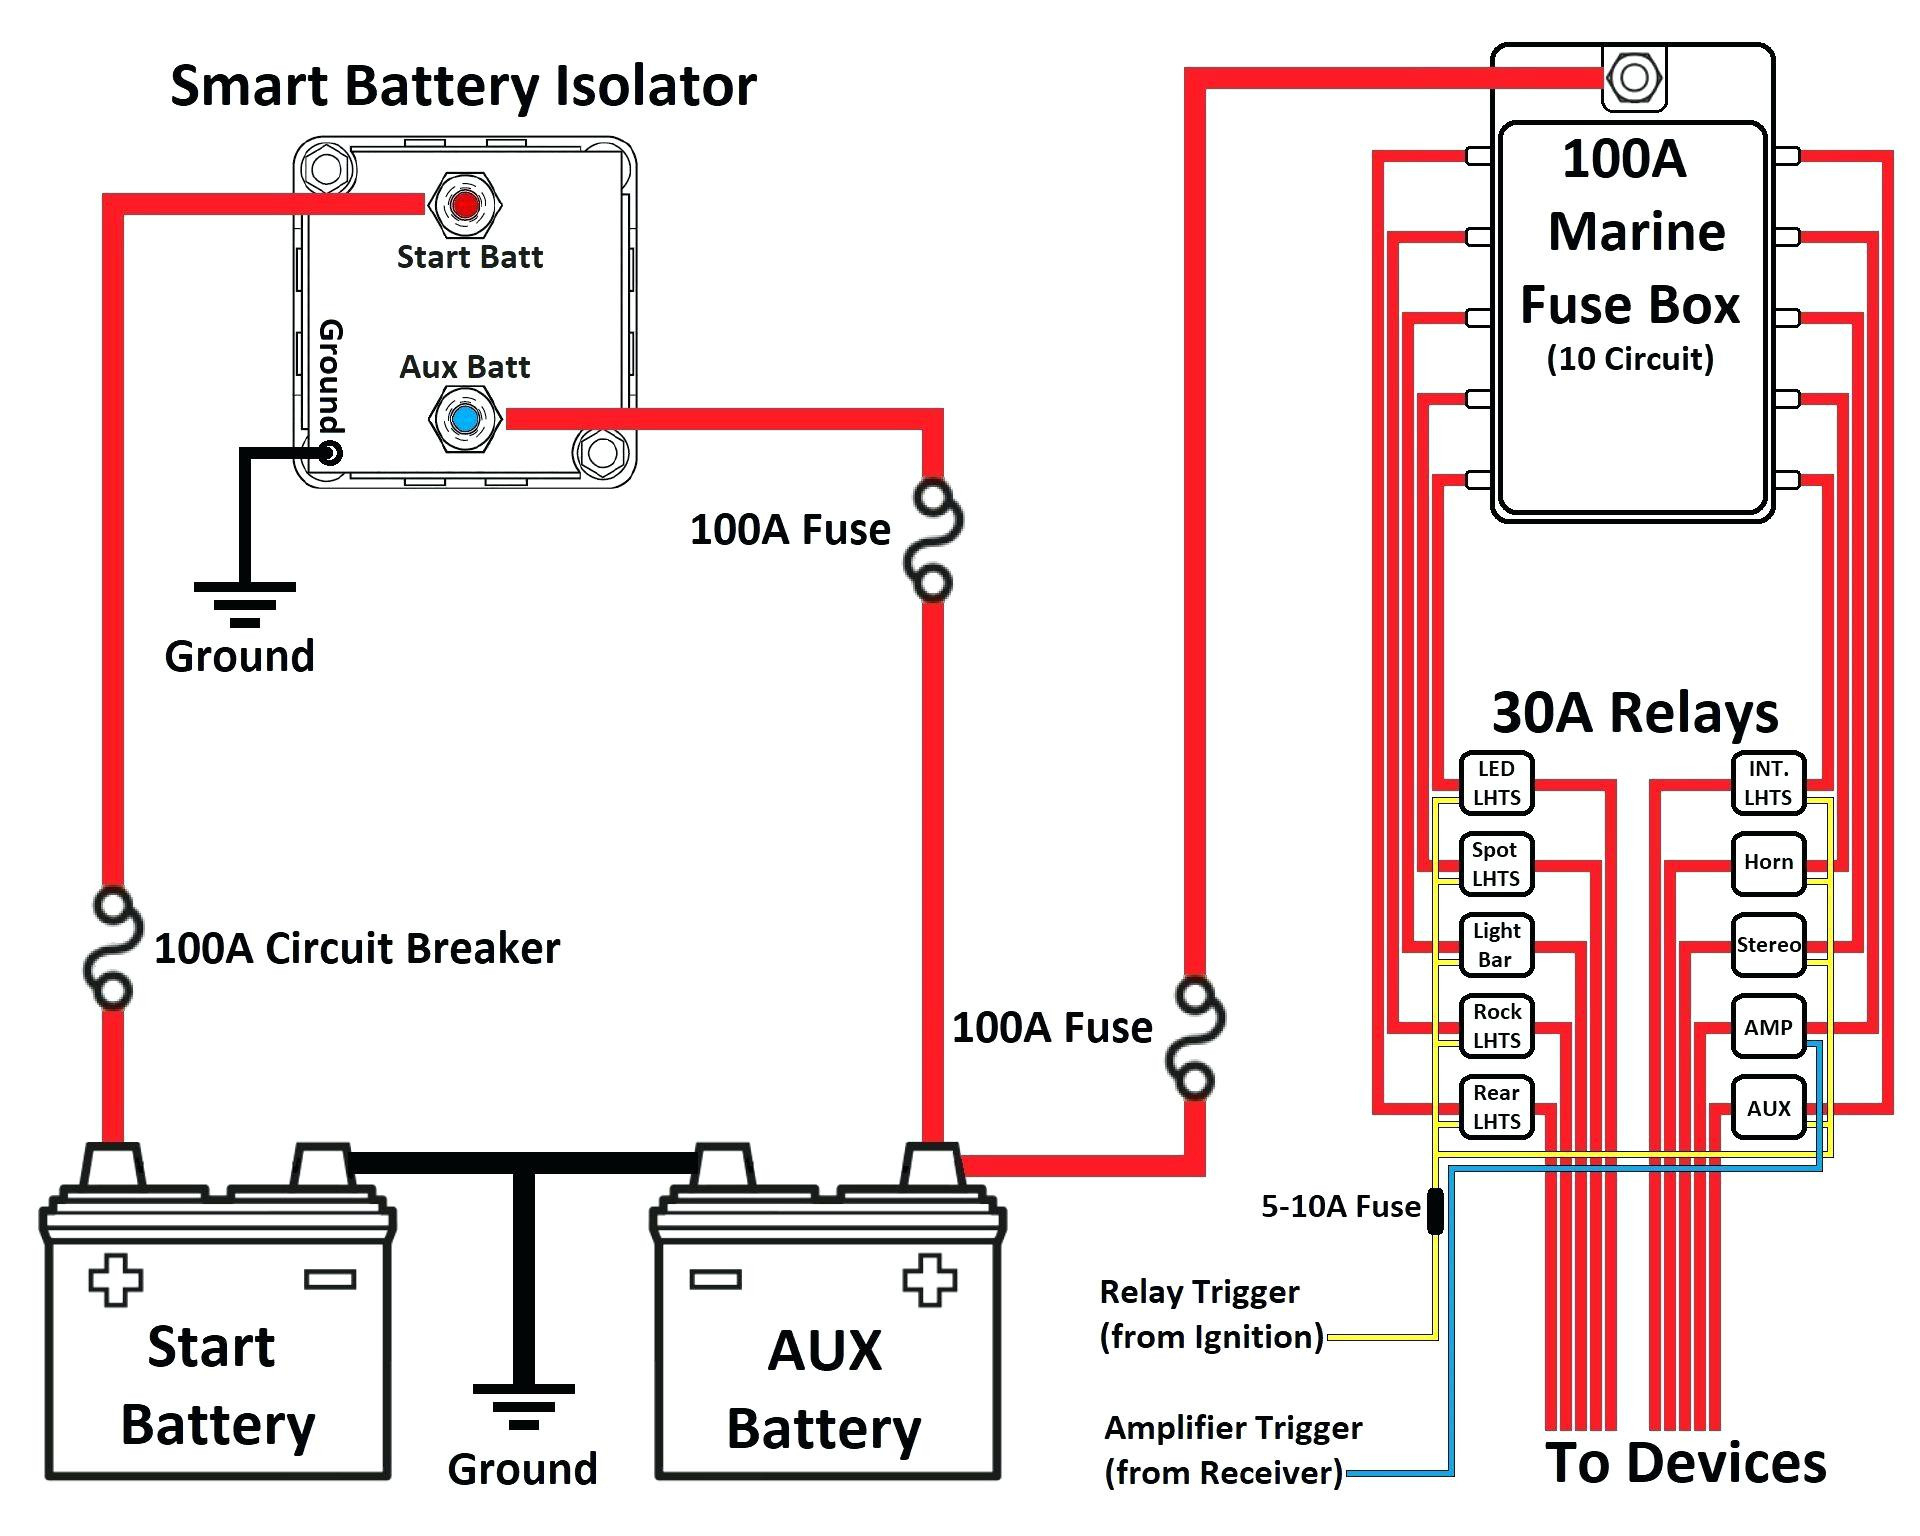 Wiring Diagram Typical Battery Isolator Circuits Single - Today - Boat Battery Switch Wiring Diagram